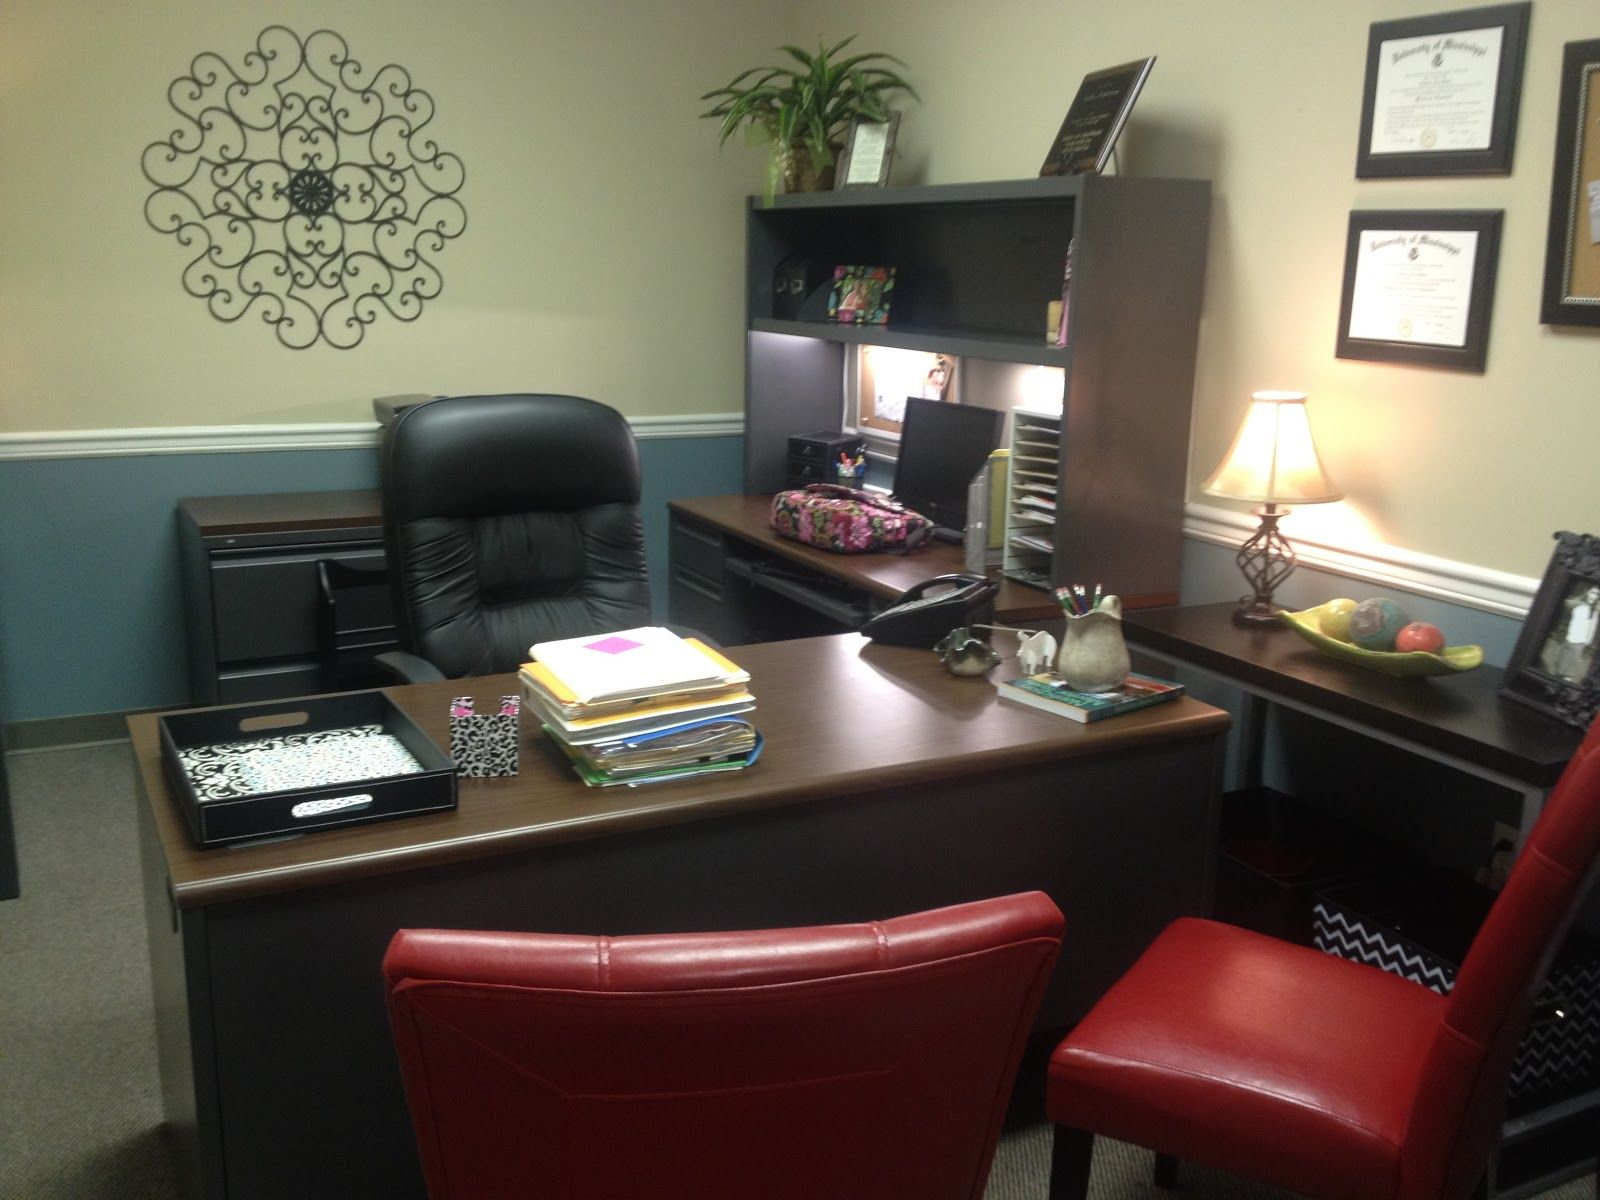 Office Decor Ideas The Principal's Office A Warm And Homey Makeover  $100 Homegoods